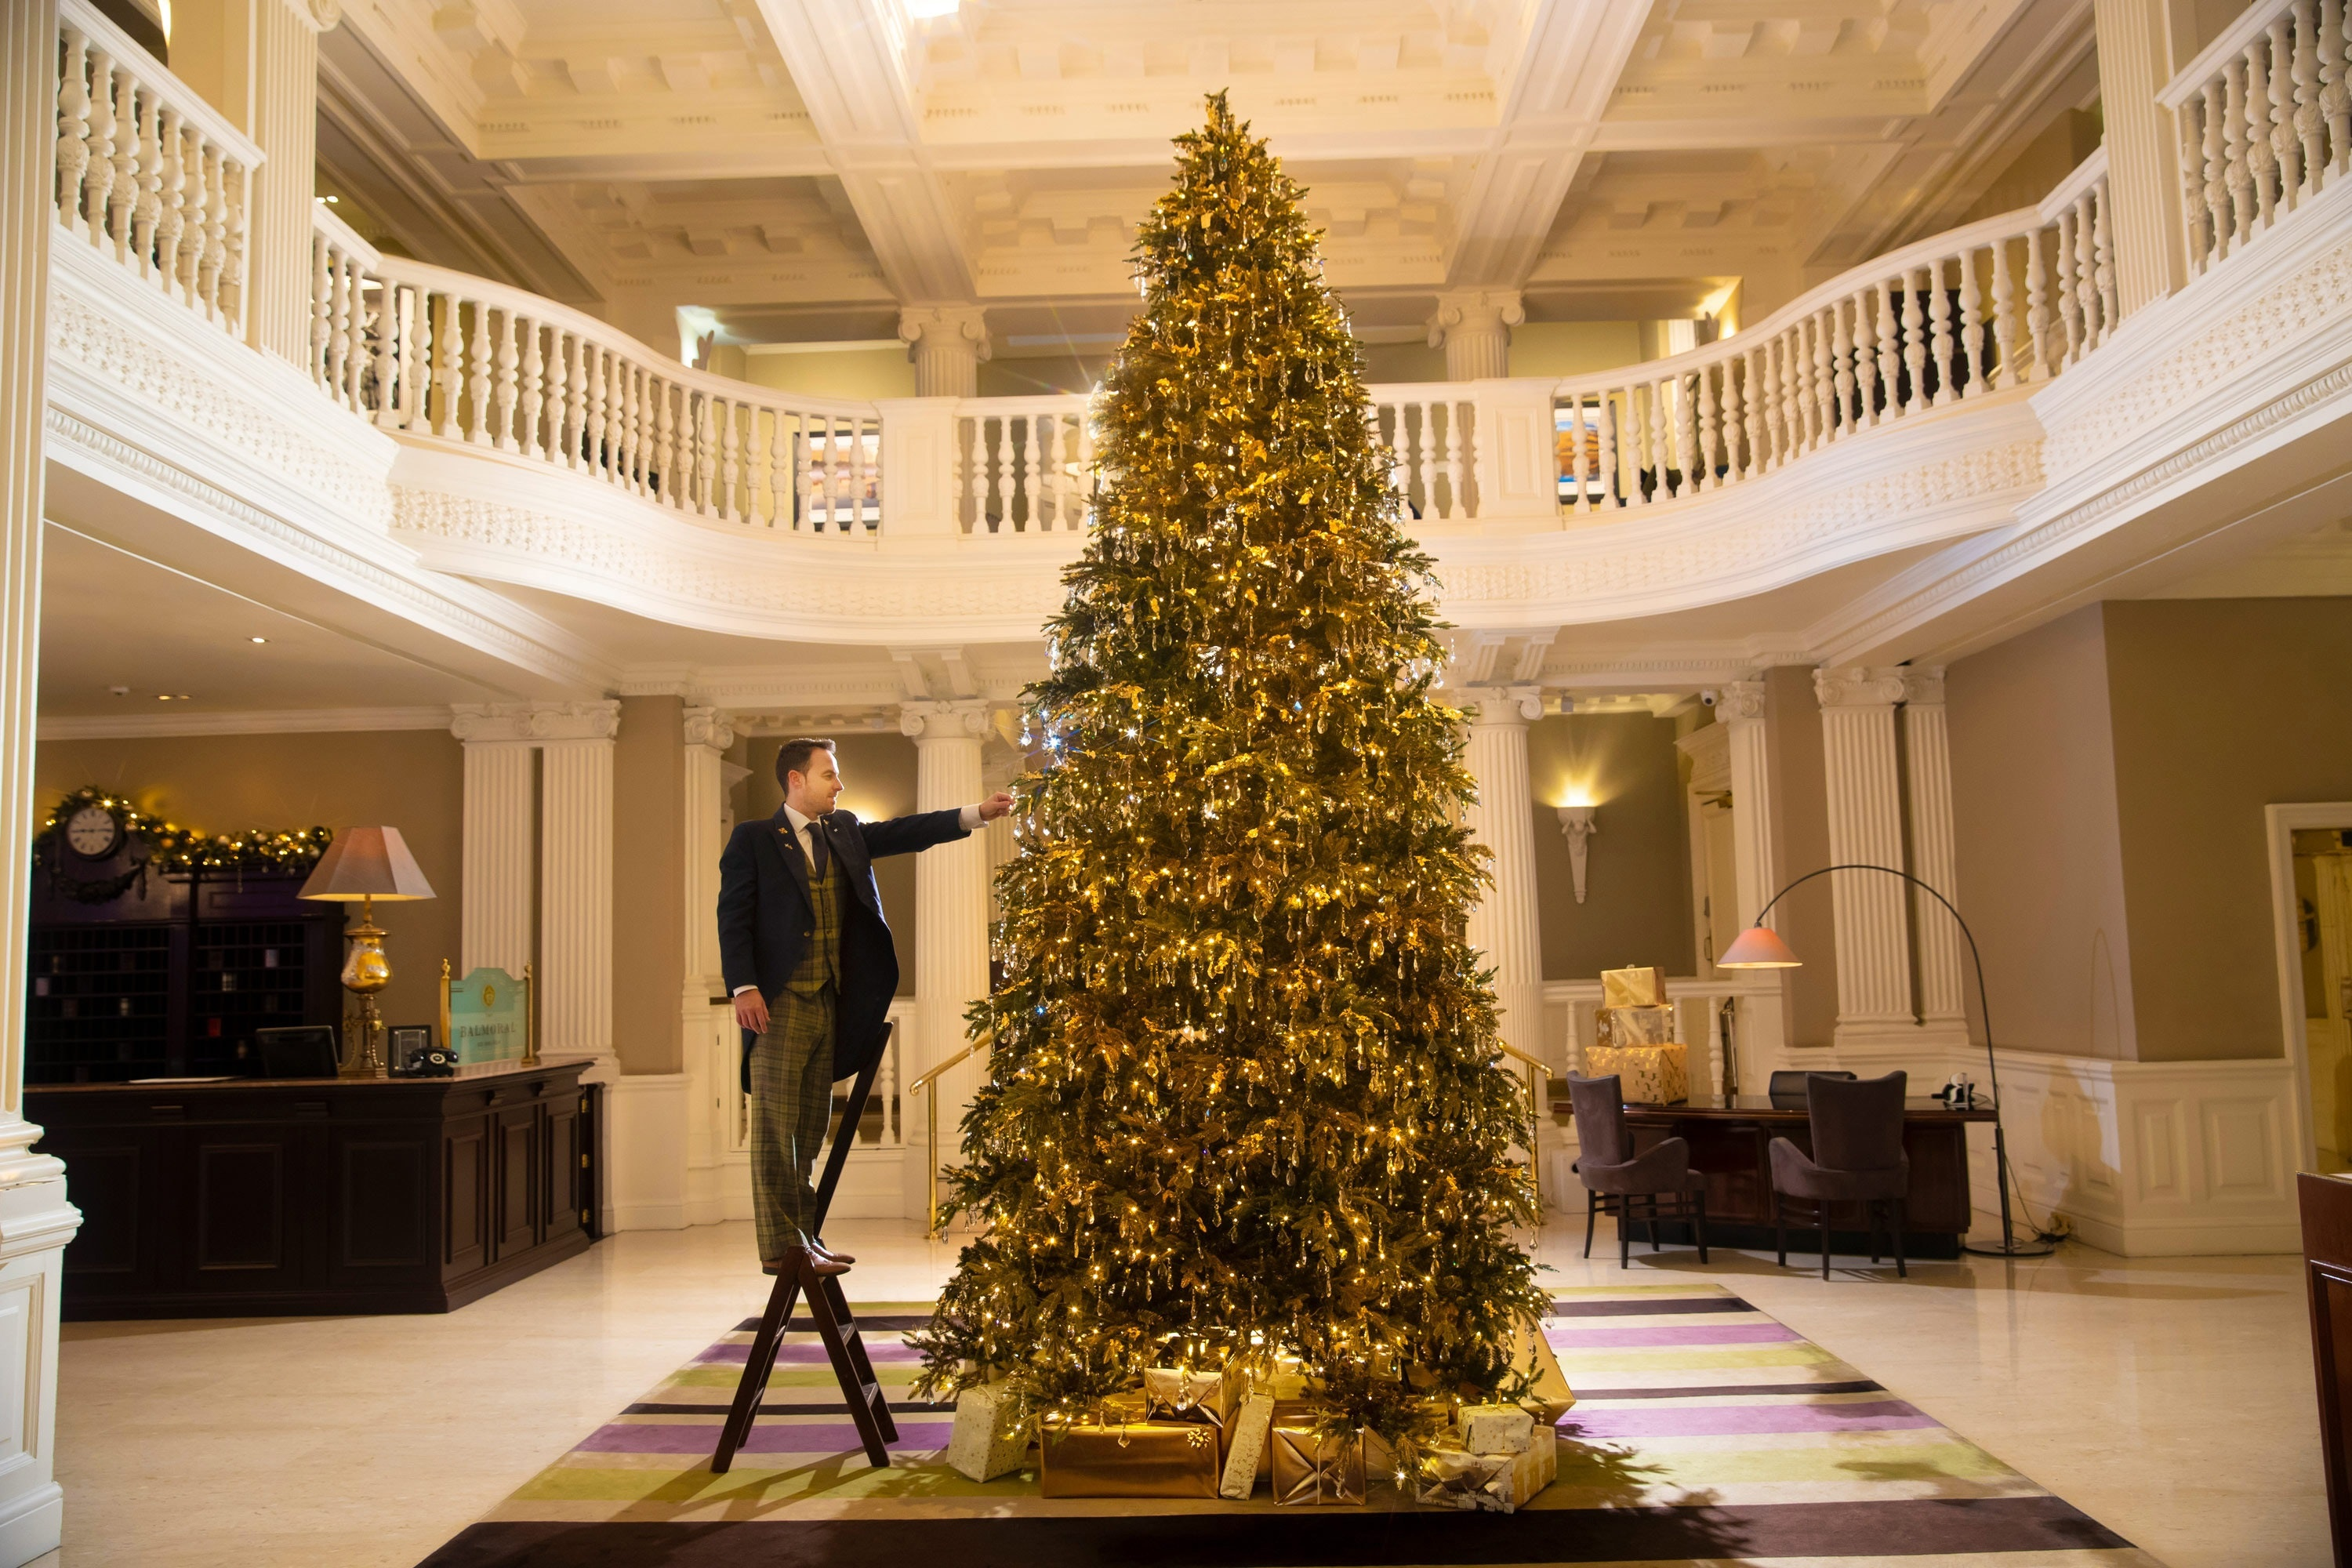 A concierge puts some finishing touches on the tree at The Balmoral.